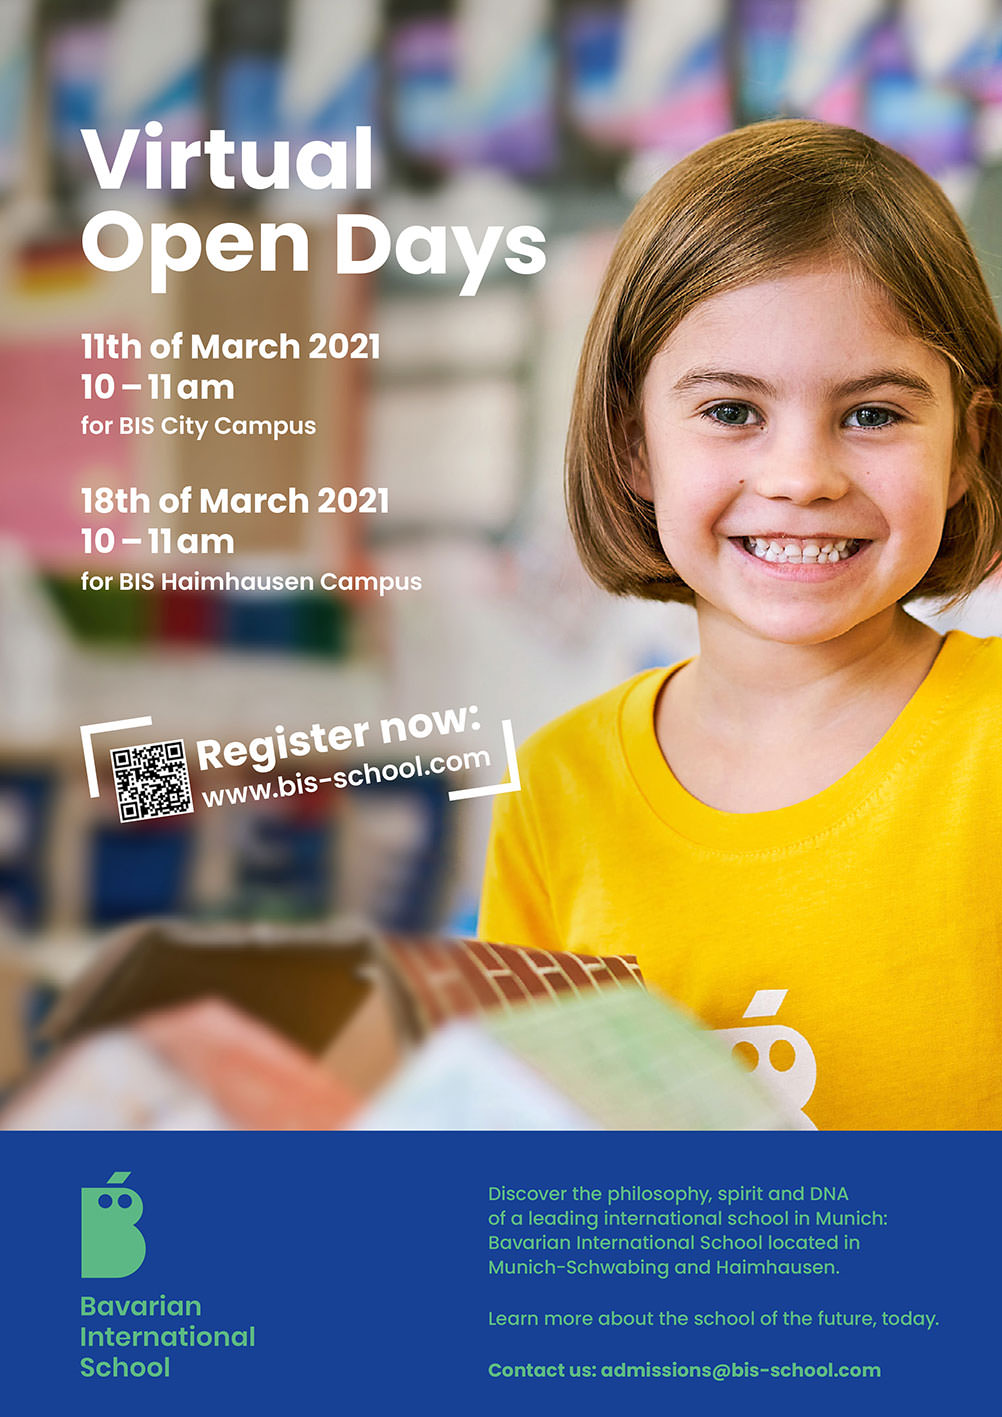 Bavarian International School Virtual Open Days